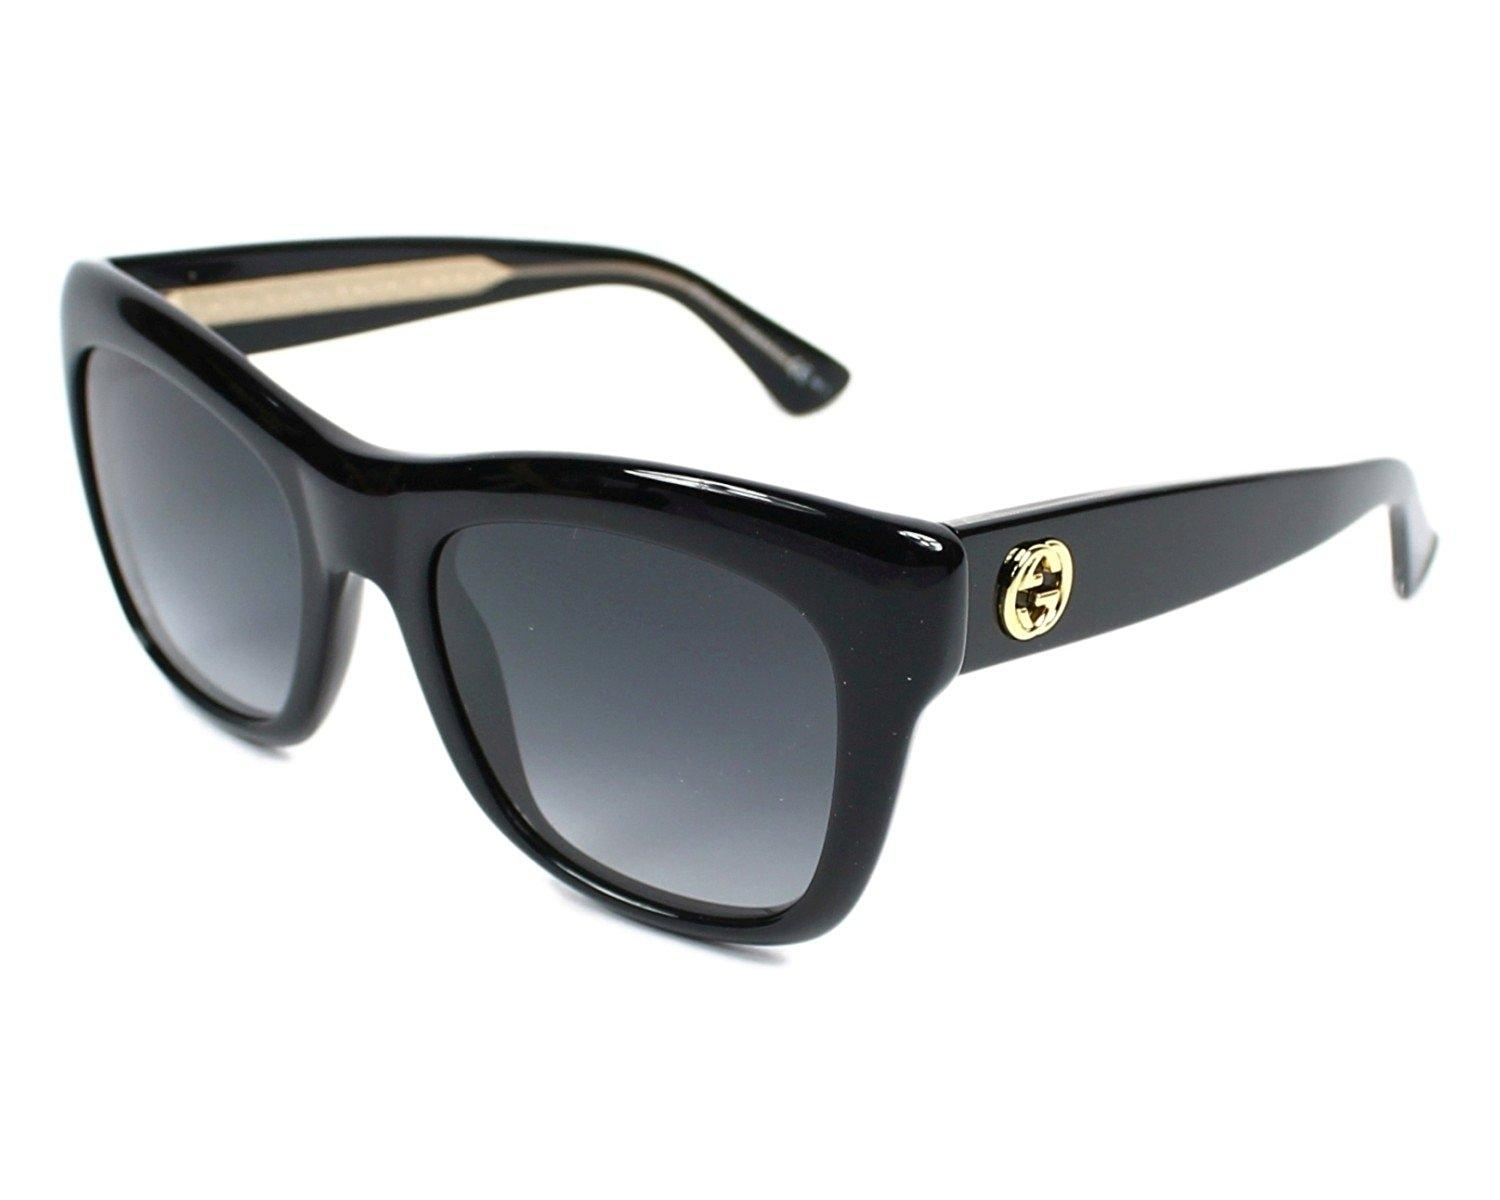 6bb9ee0dca Gucci new oversized black cat eye sunglasses gold metal logo jpg 440x352  Gucci logo gold sunglass